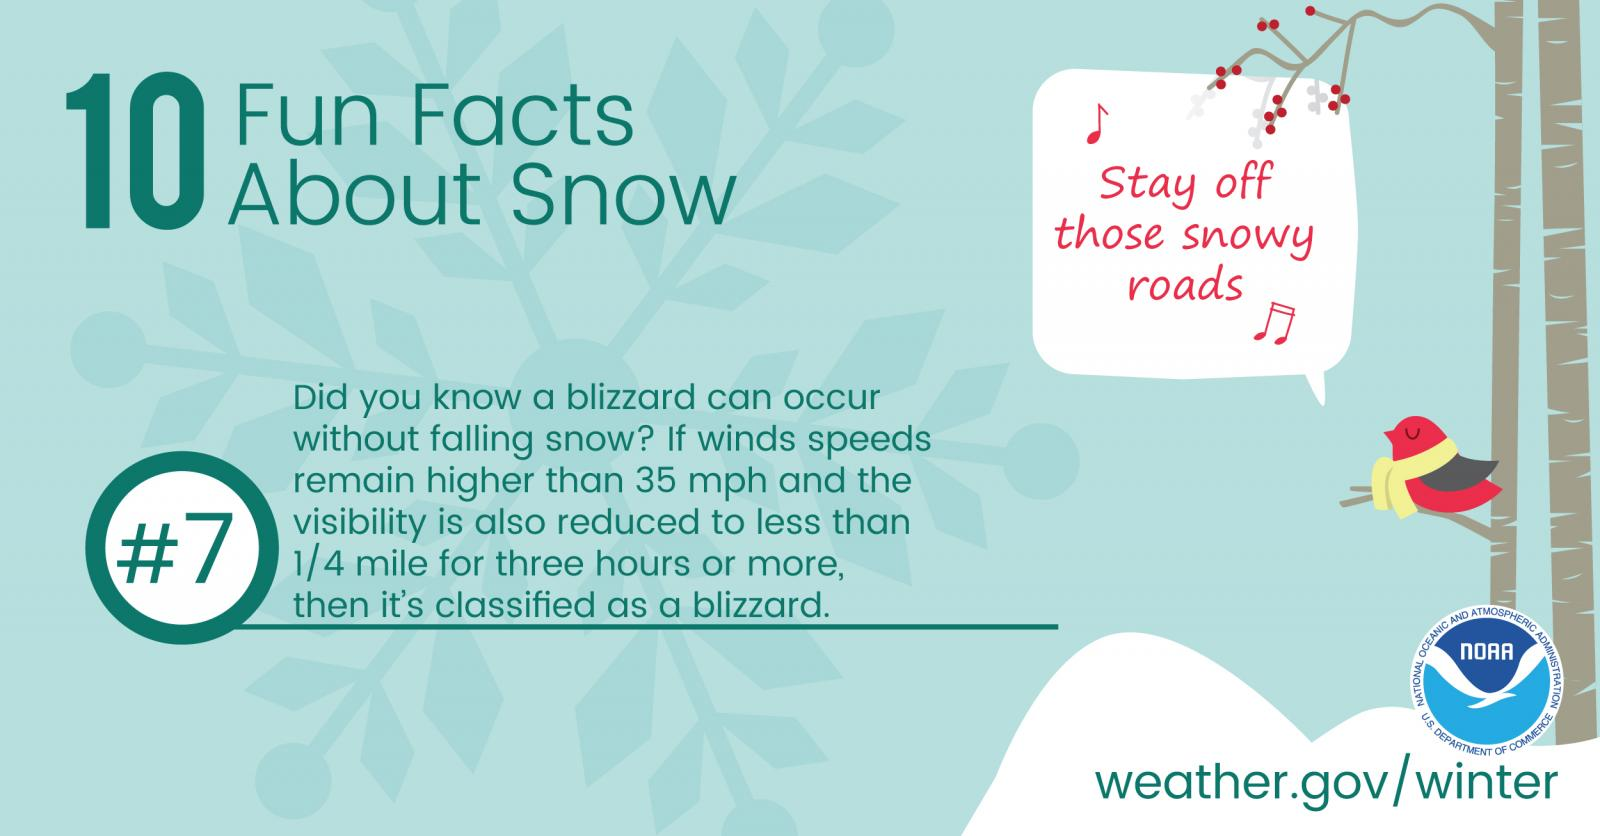 10 Fun Facts About Snow: #7. Did you know a blizzard can occur without falling snow? If wind speeds remain higher than 35 mph and the visibility is also reduced to less than 1/4 mile for three hours or more, then it's classified as a blizzard.